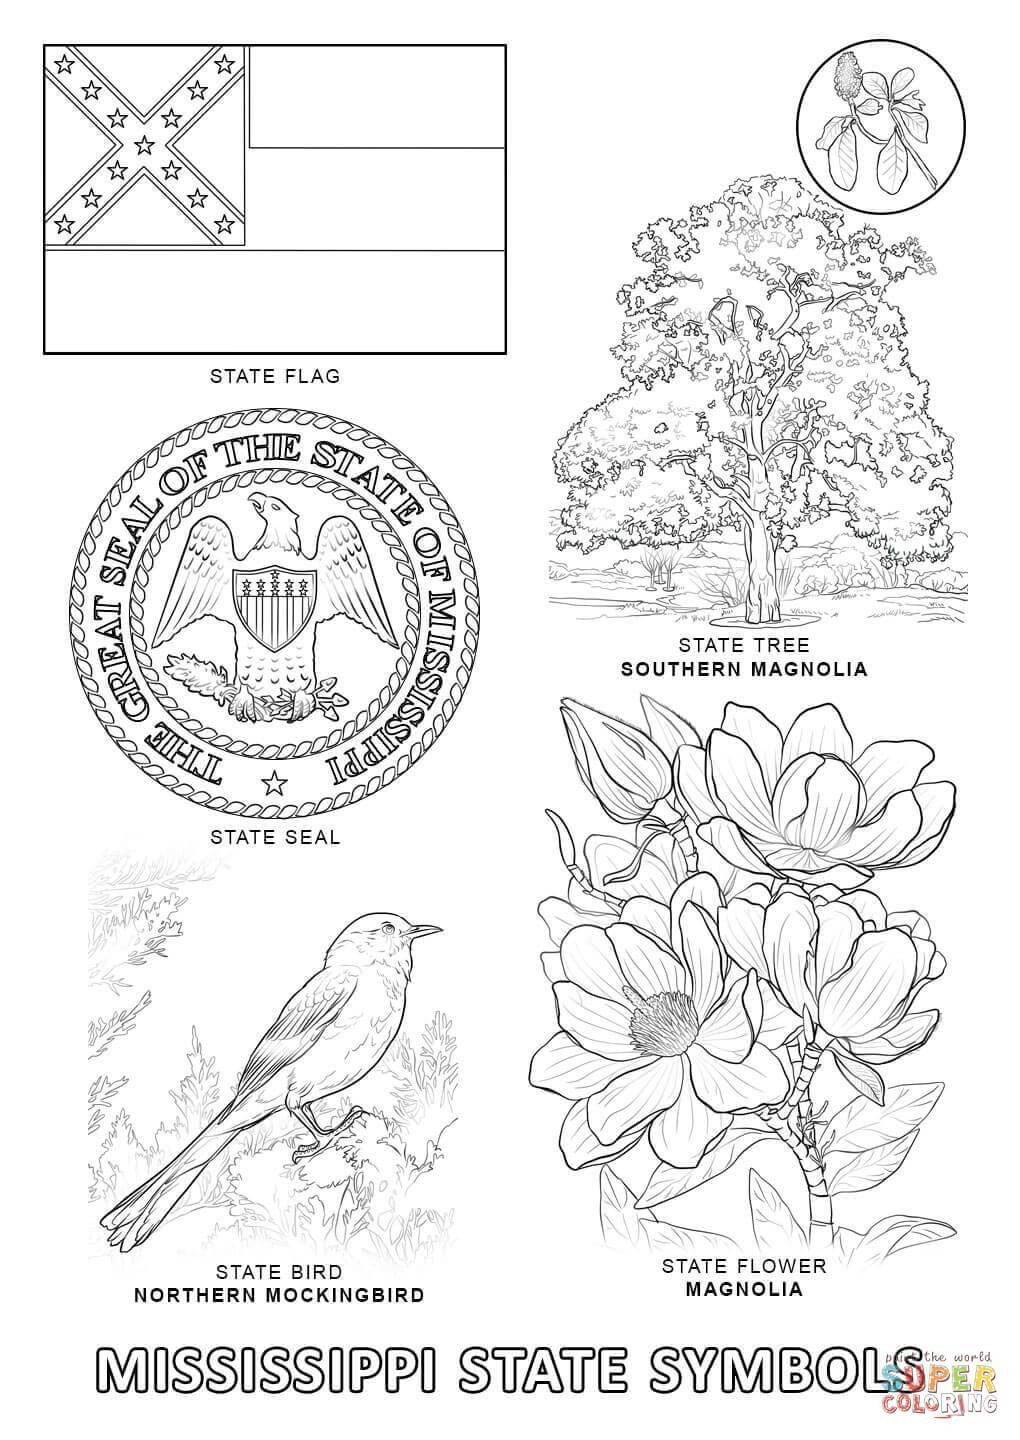 Oklahoma State Flag Coloring Page Mississippi State